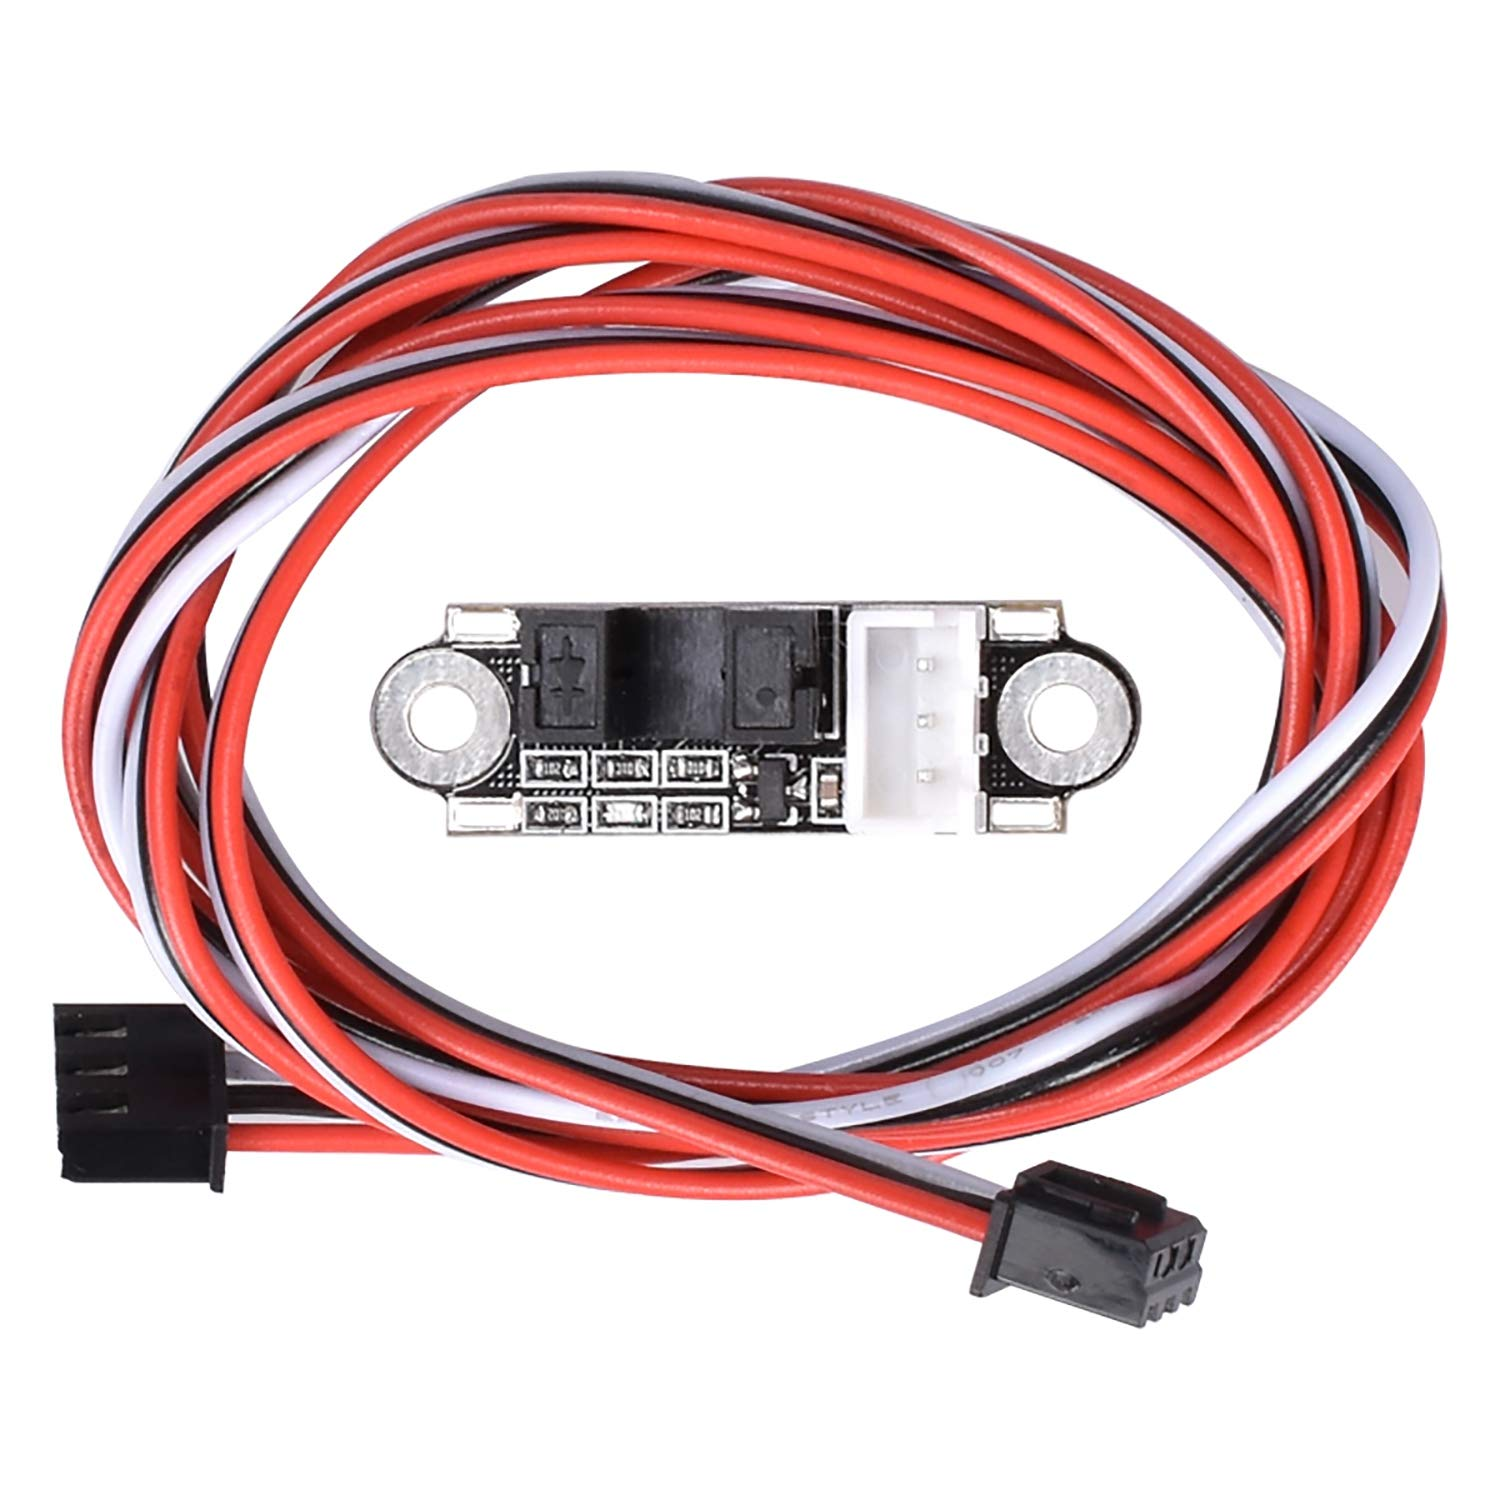 Optical Endstop Switch Sensor Module Light Control Limit Board with Cable 3D Printer Part CNC Arduino Electronic Photoelectric